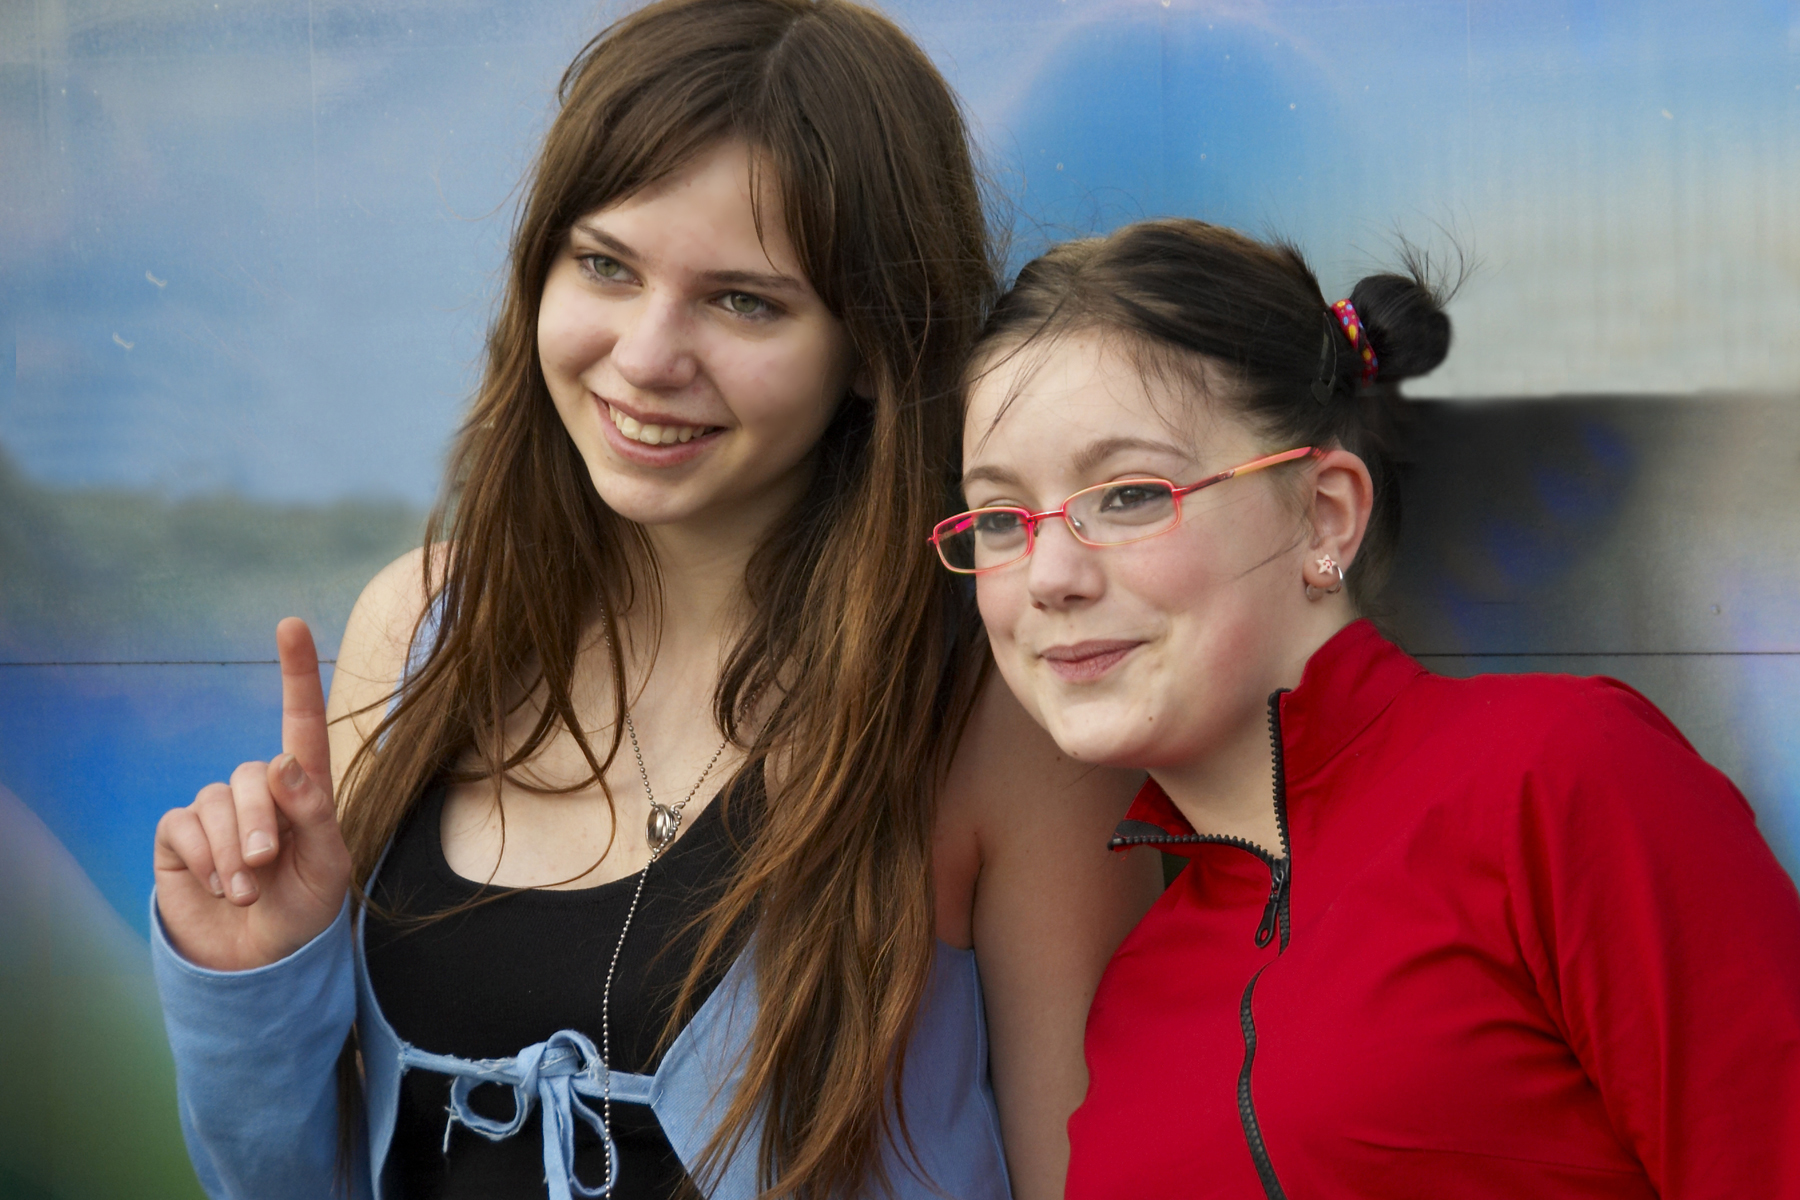 Description Young girls with very nice smiles.jpg